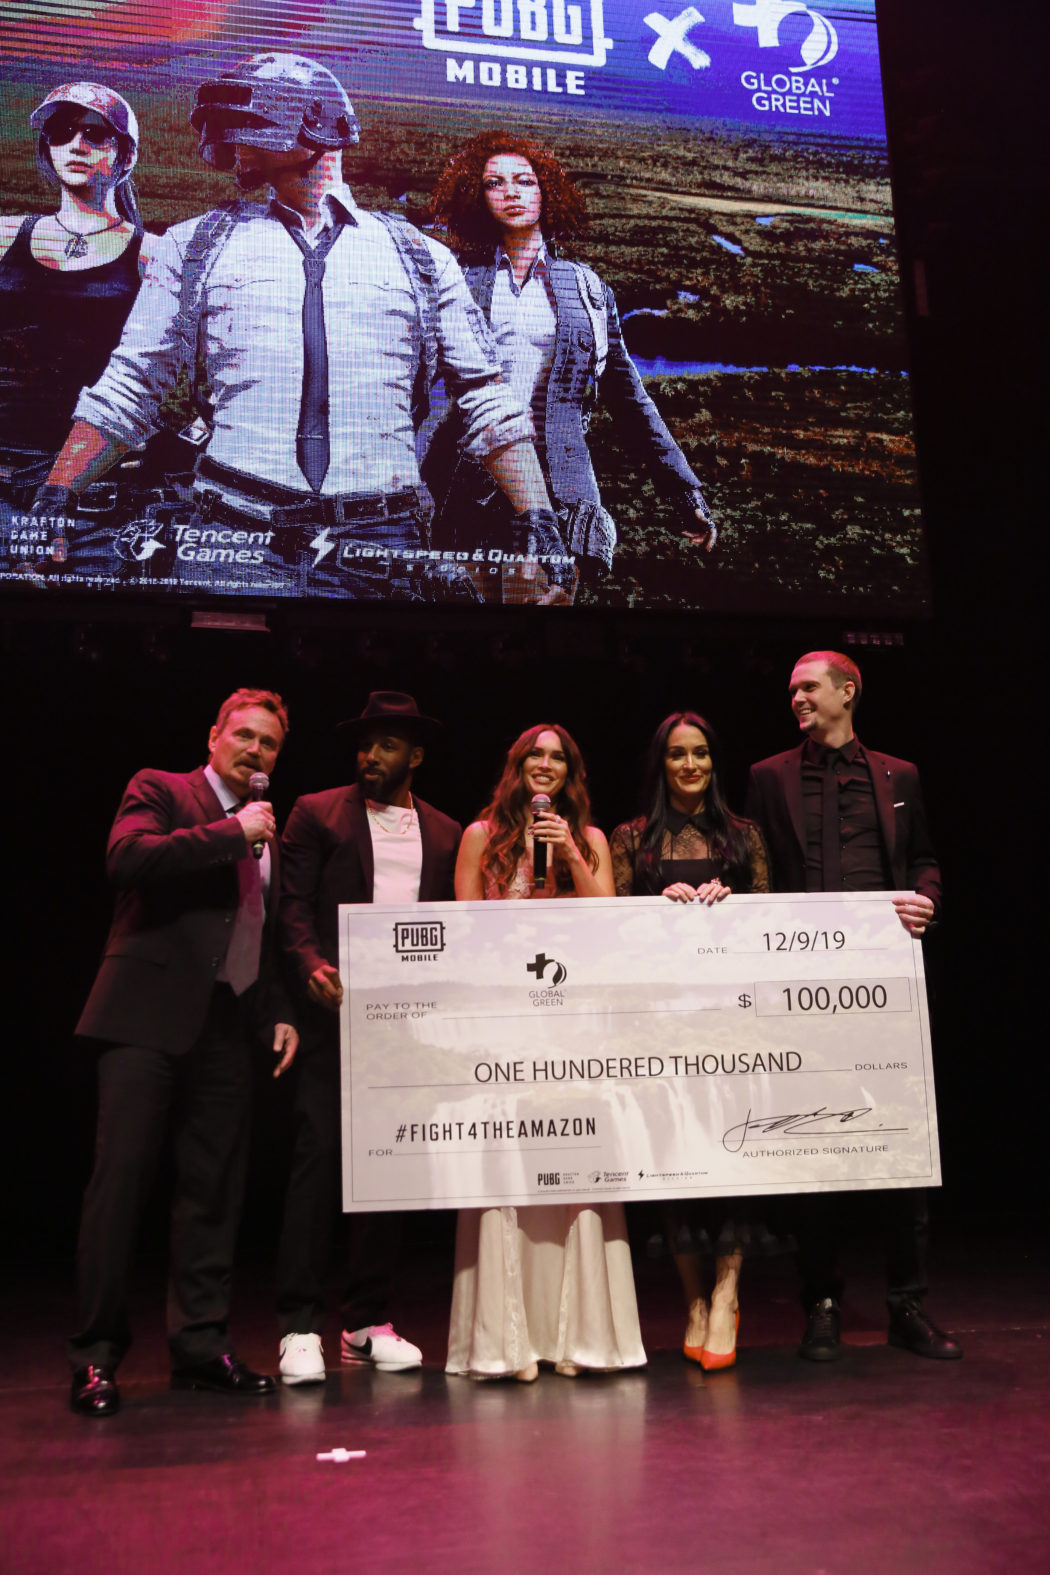 Megan Fox presents PUBG MOBILEs donation to Global Green with her Team Foxy teammates Stephen Twitch Boss Nikki Bella and Pickles Ryan Miller